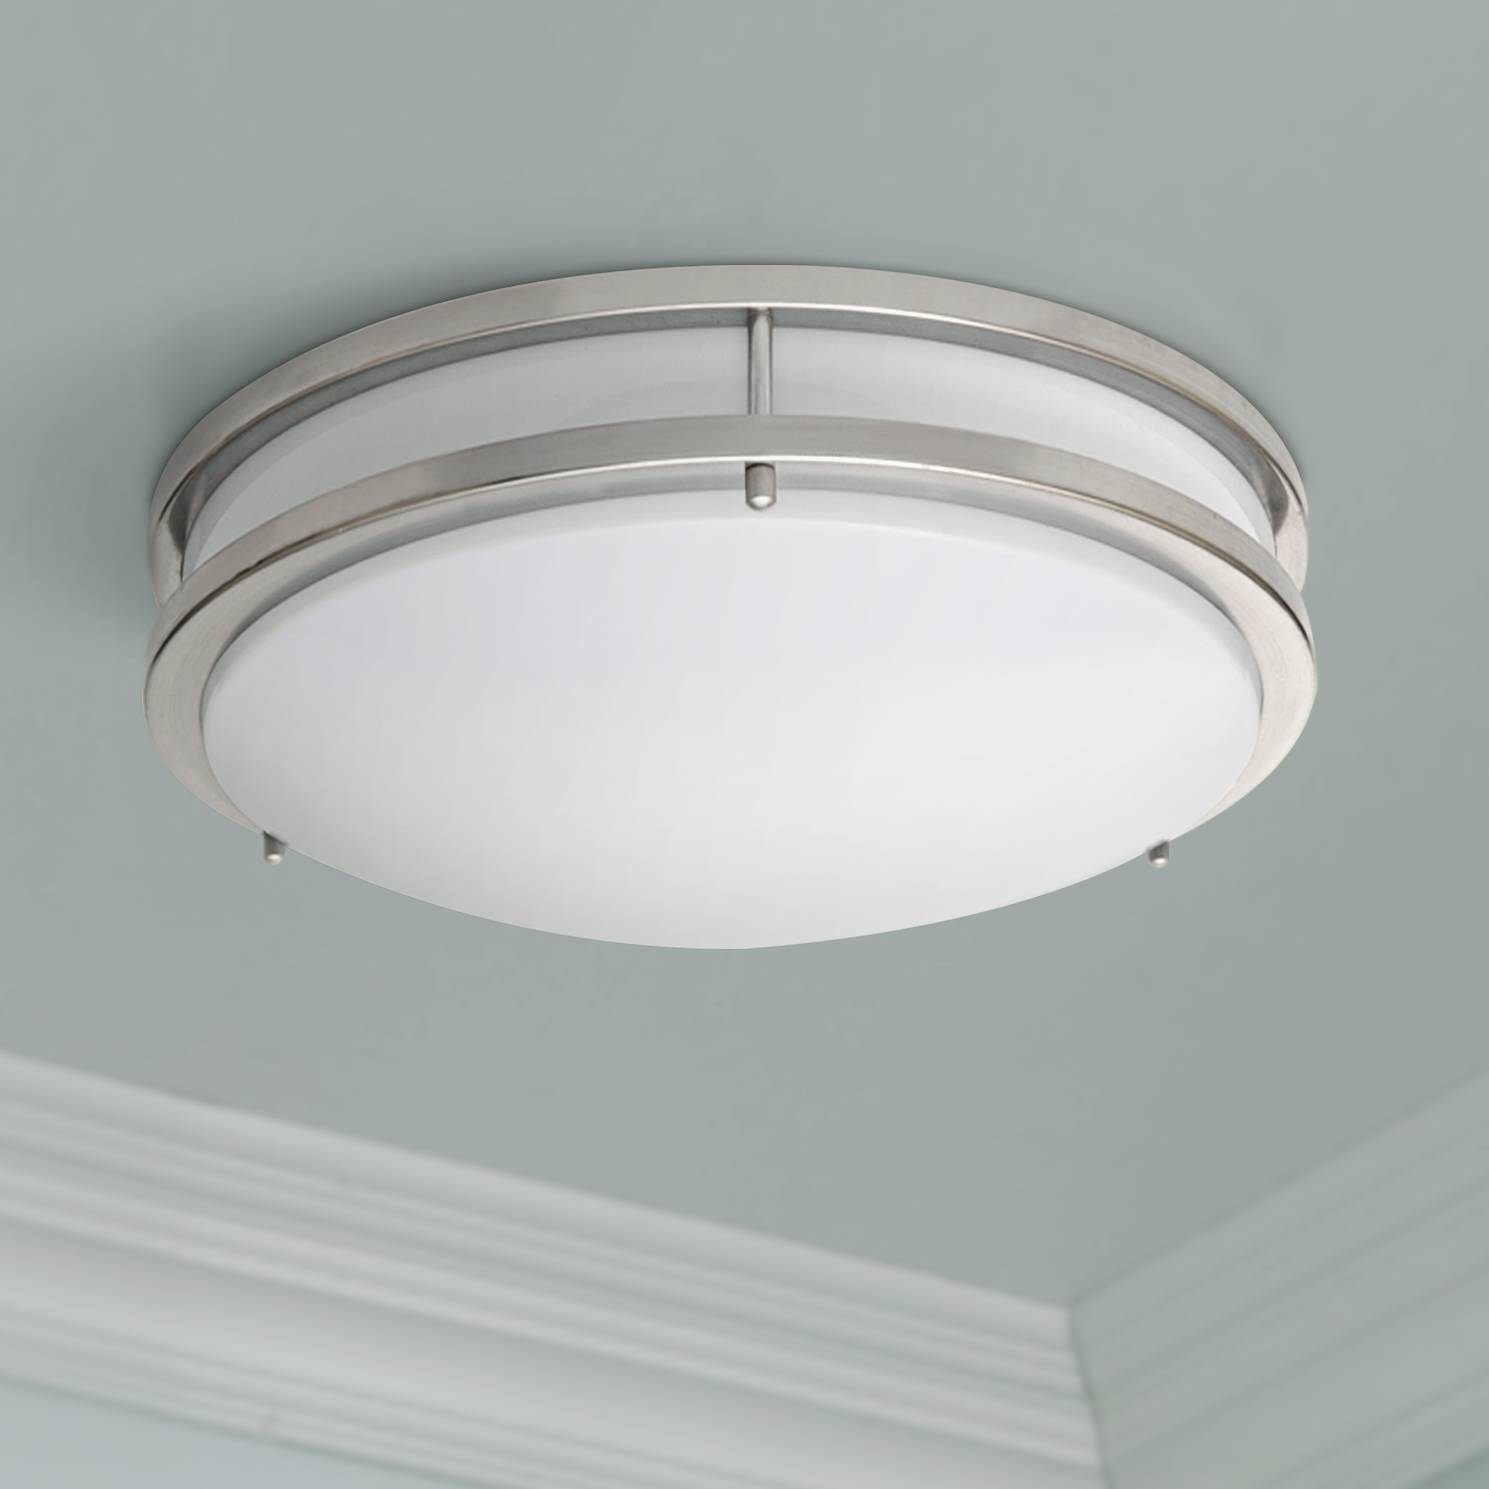 Zare brushed nickel 14 wide flushmount led ceiling light